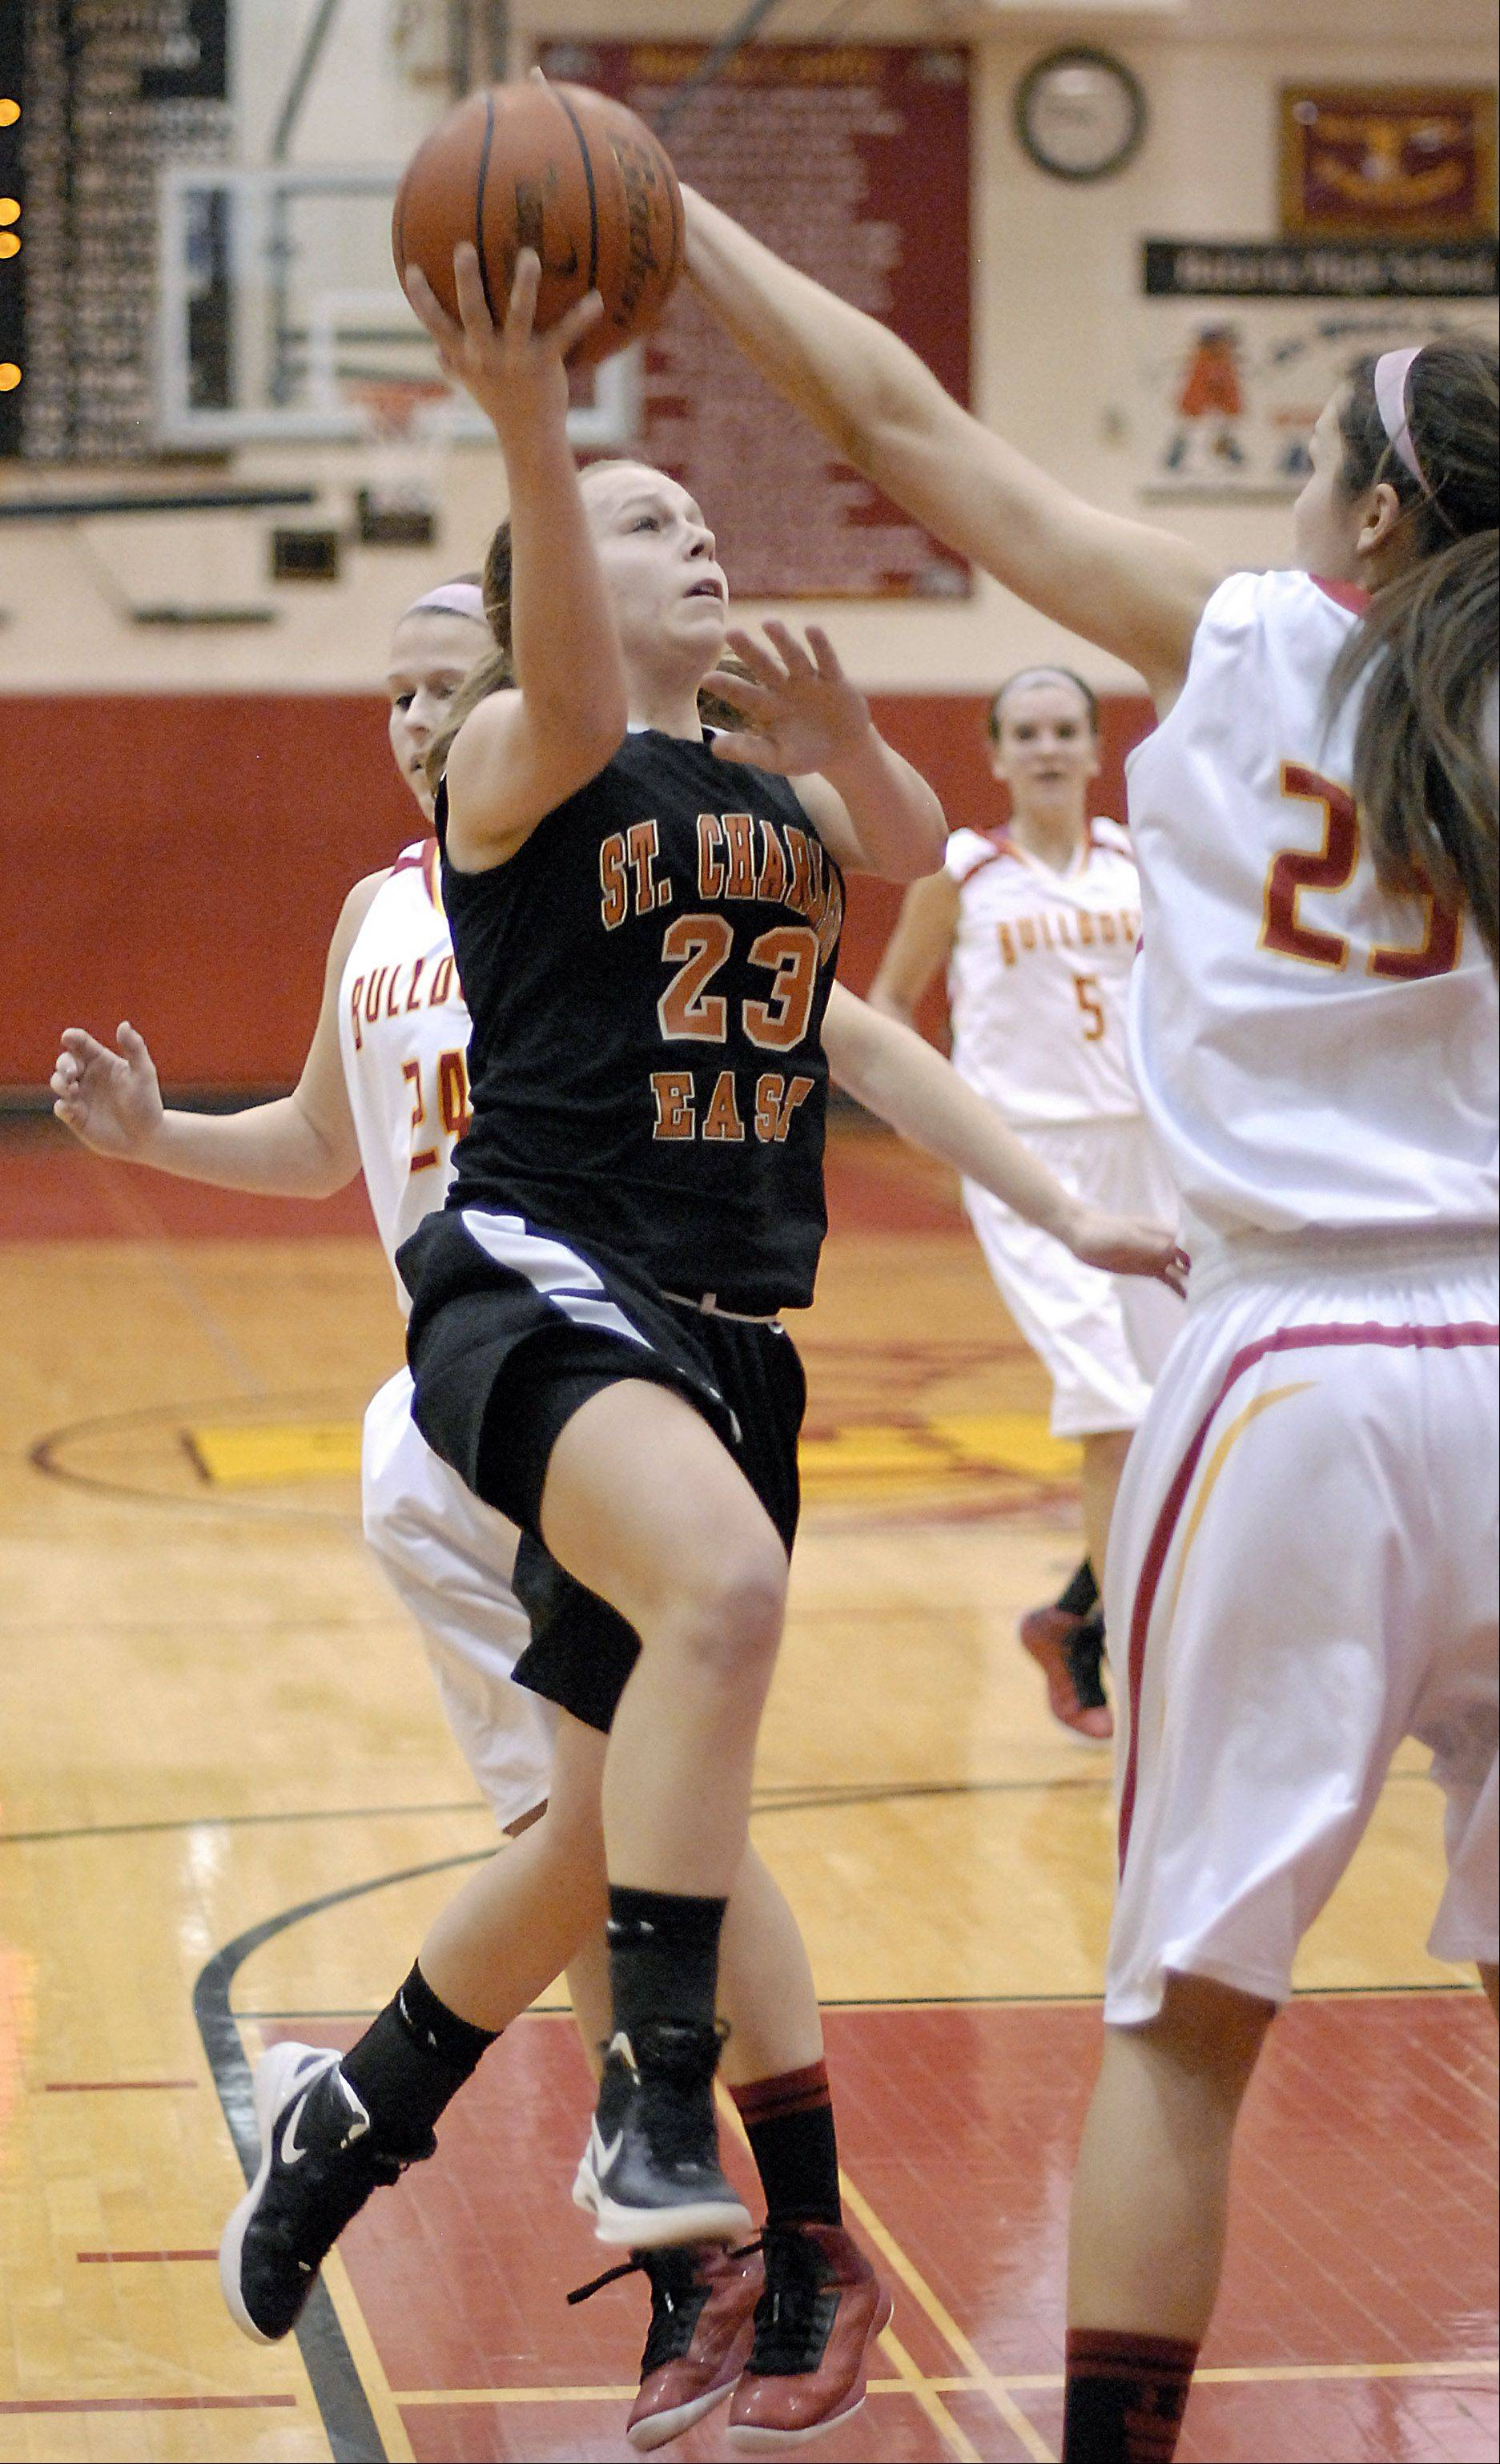 Batavia's Hannah Frazier denies St. Charles East's Amanda Hilton a shot in the second quarter on Tuesday, January 8.